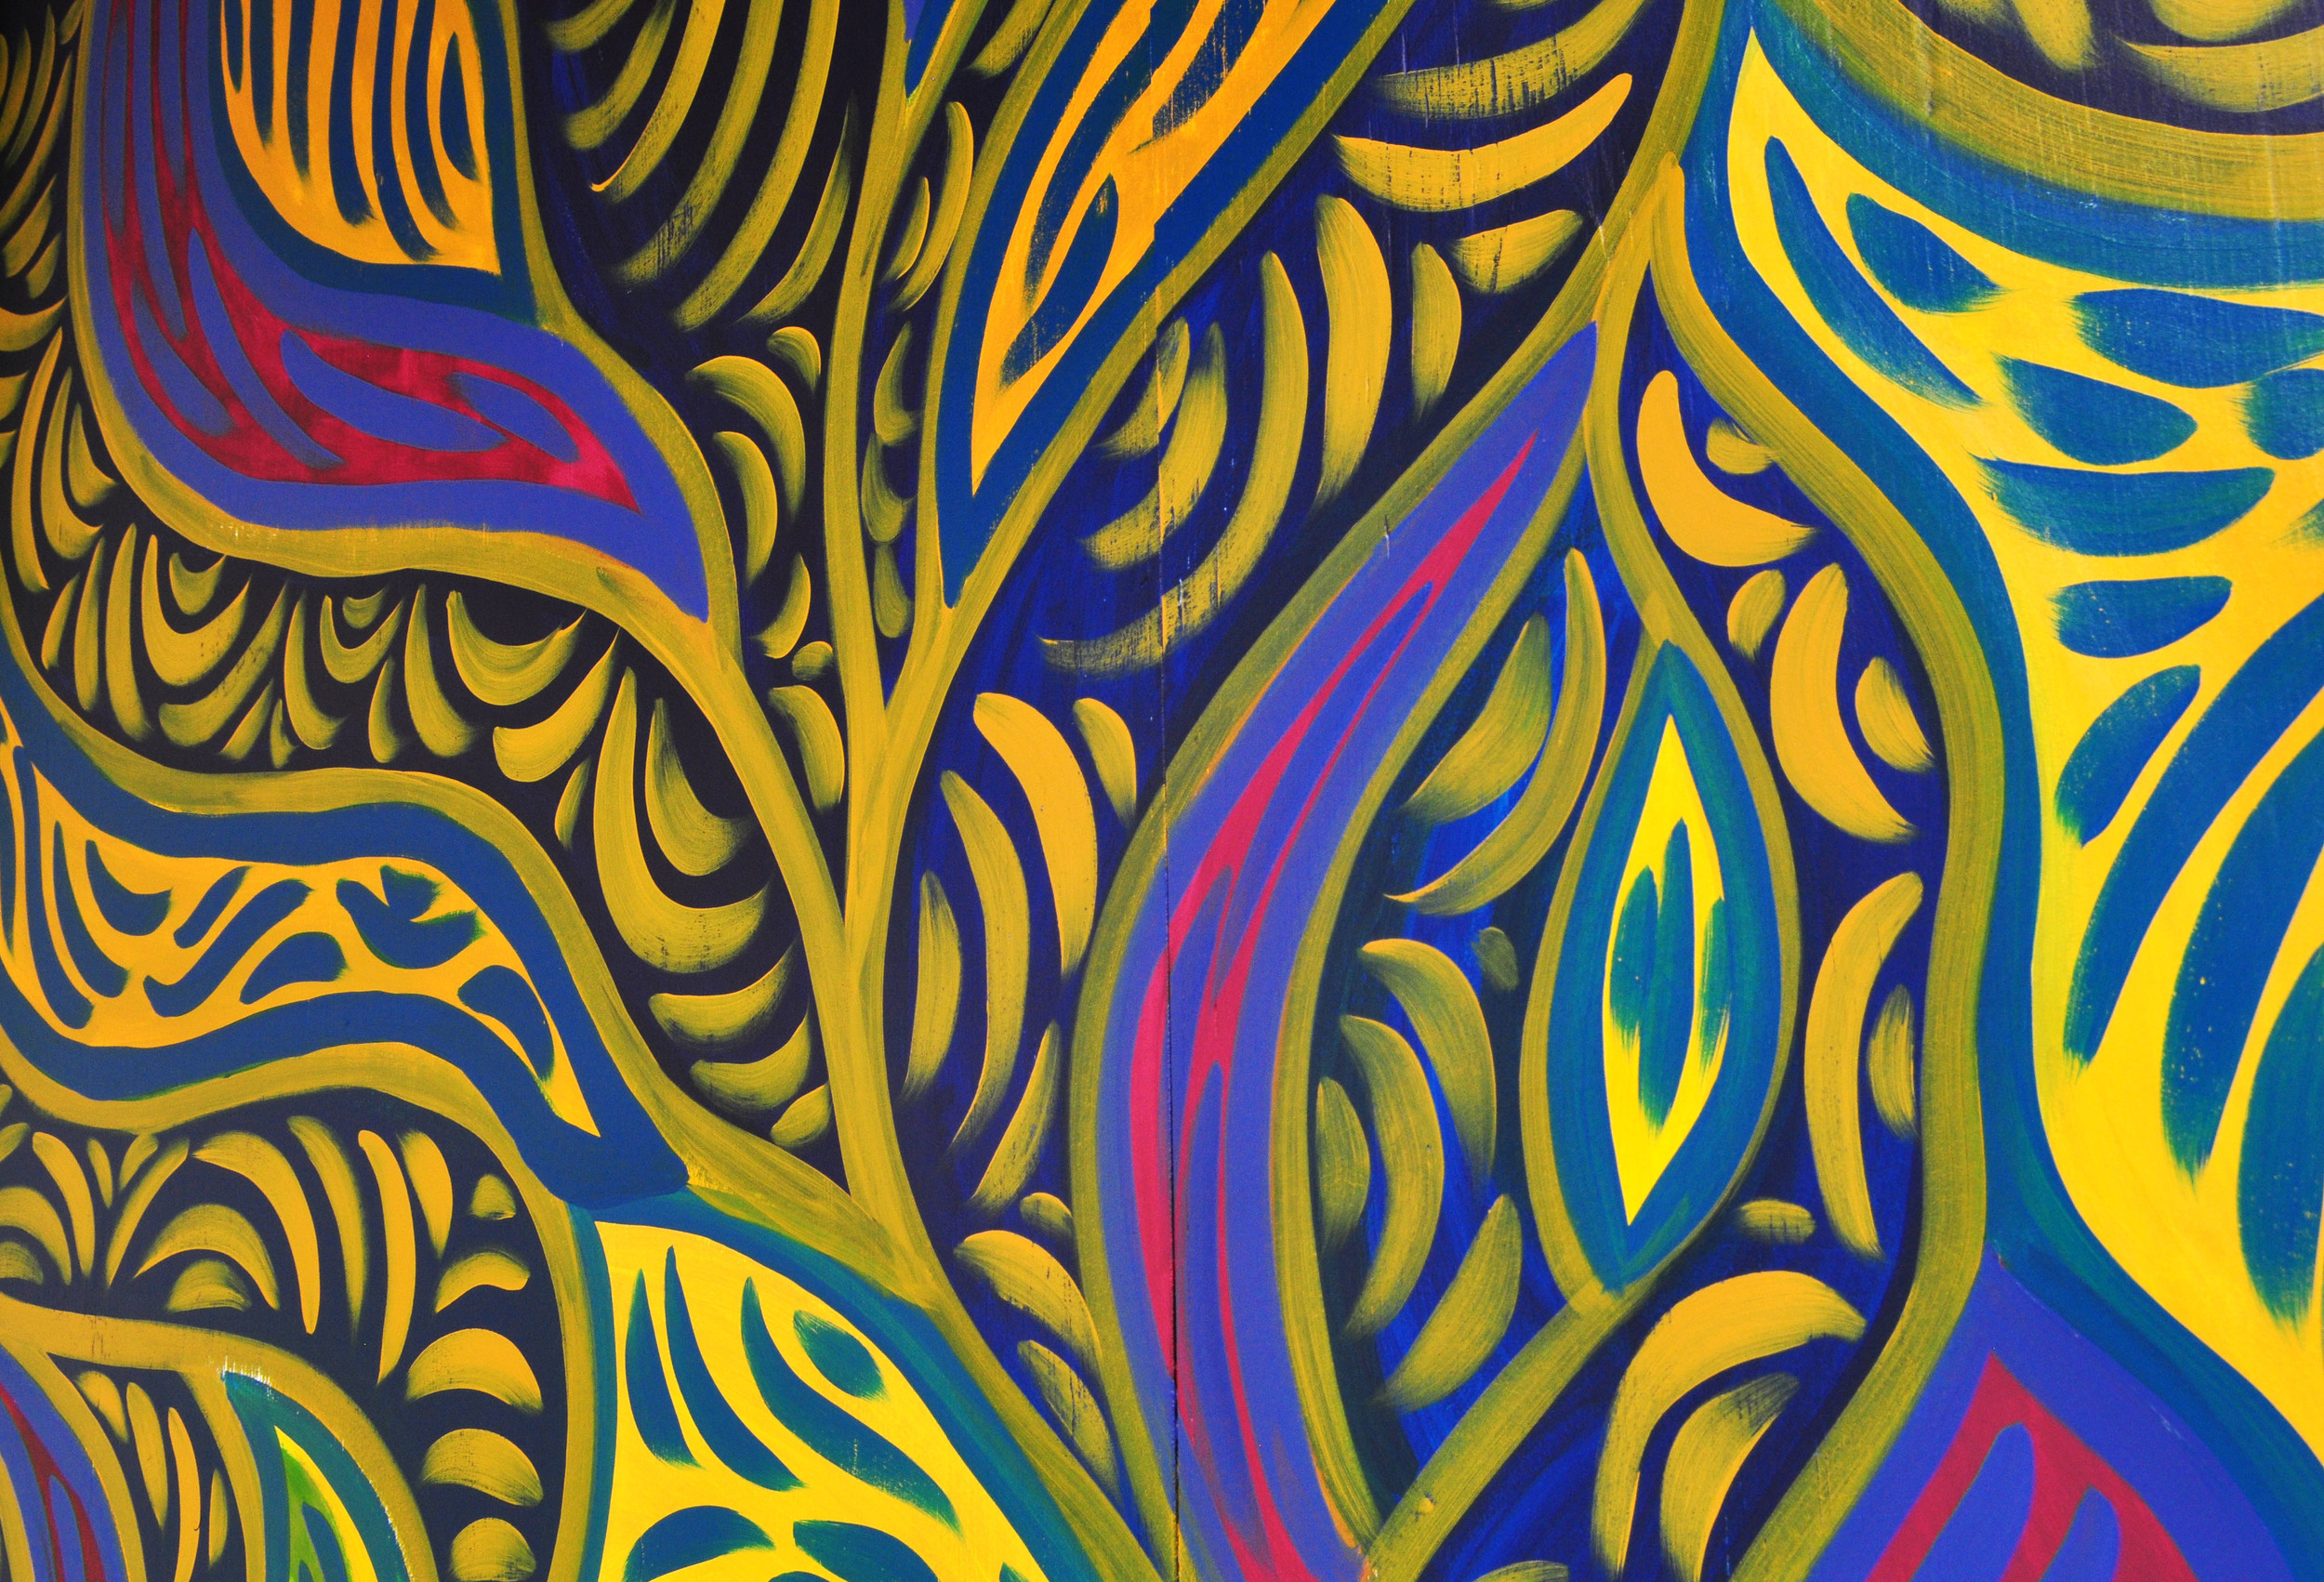 Fiesta (Detail)  , 15 ft 4 inches x 7 ft 6 inches, Acrylic on pine, 2015, Mallory Donen,  Tache 372, University of Manitoba, MB